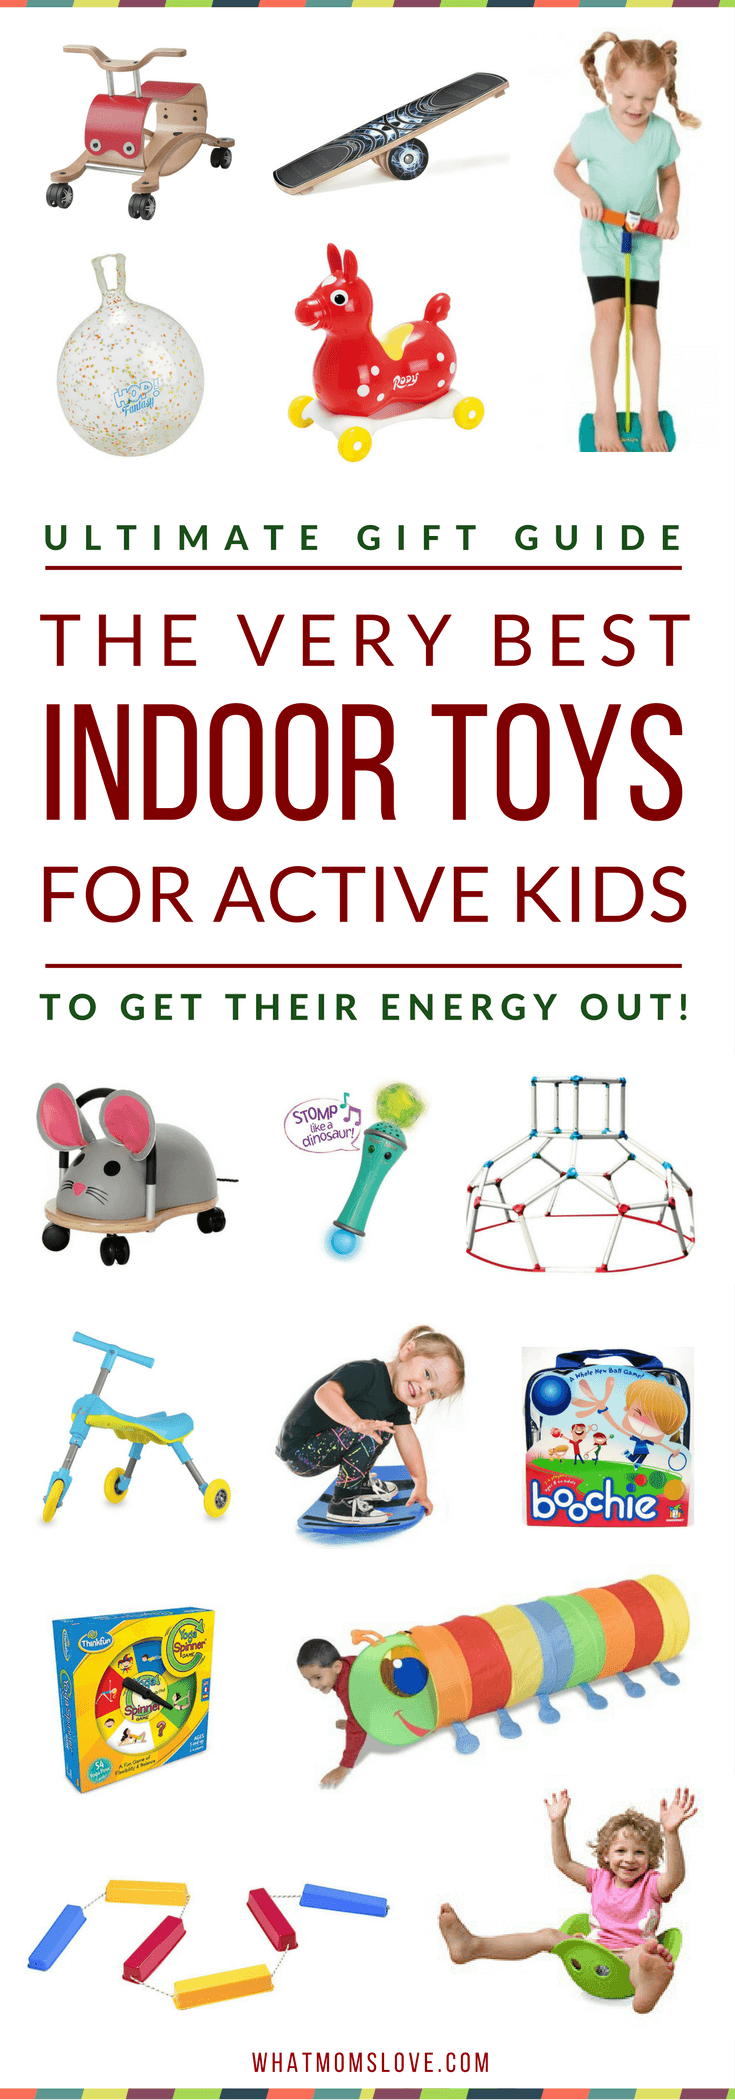 Toys For Active Toddlers : Energy busting indoor games activities for kids